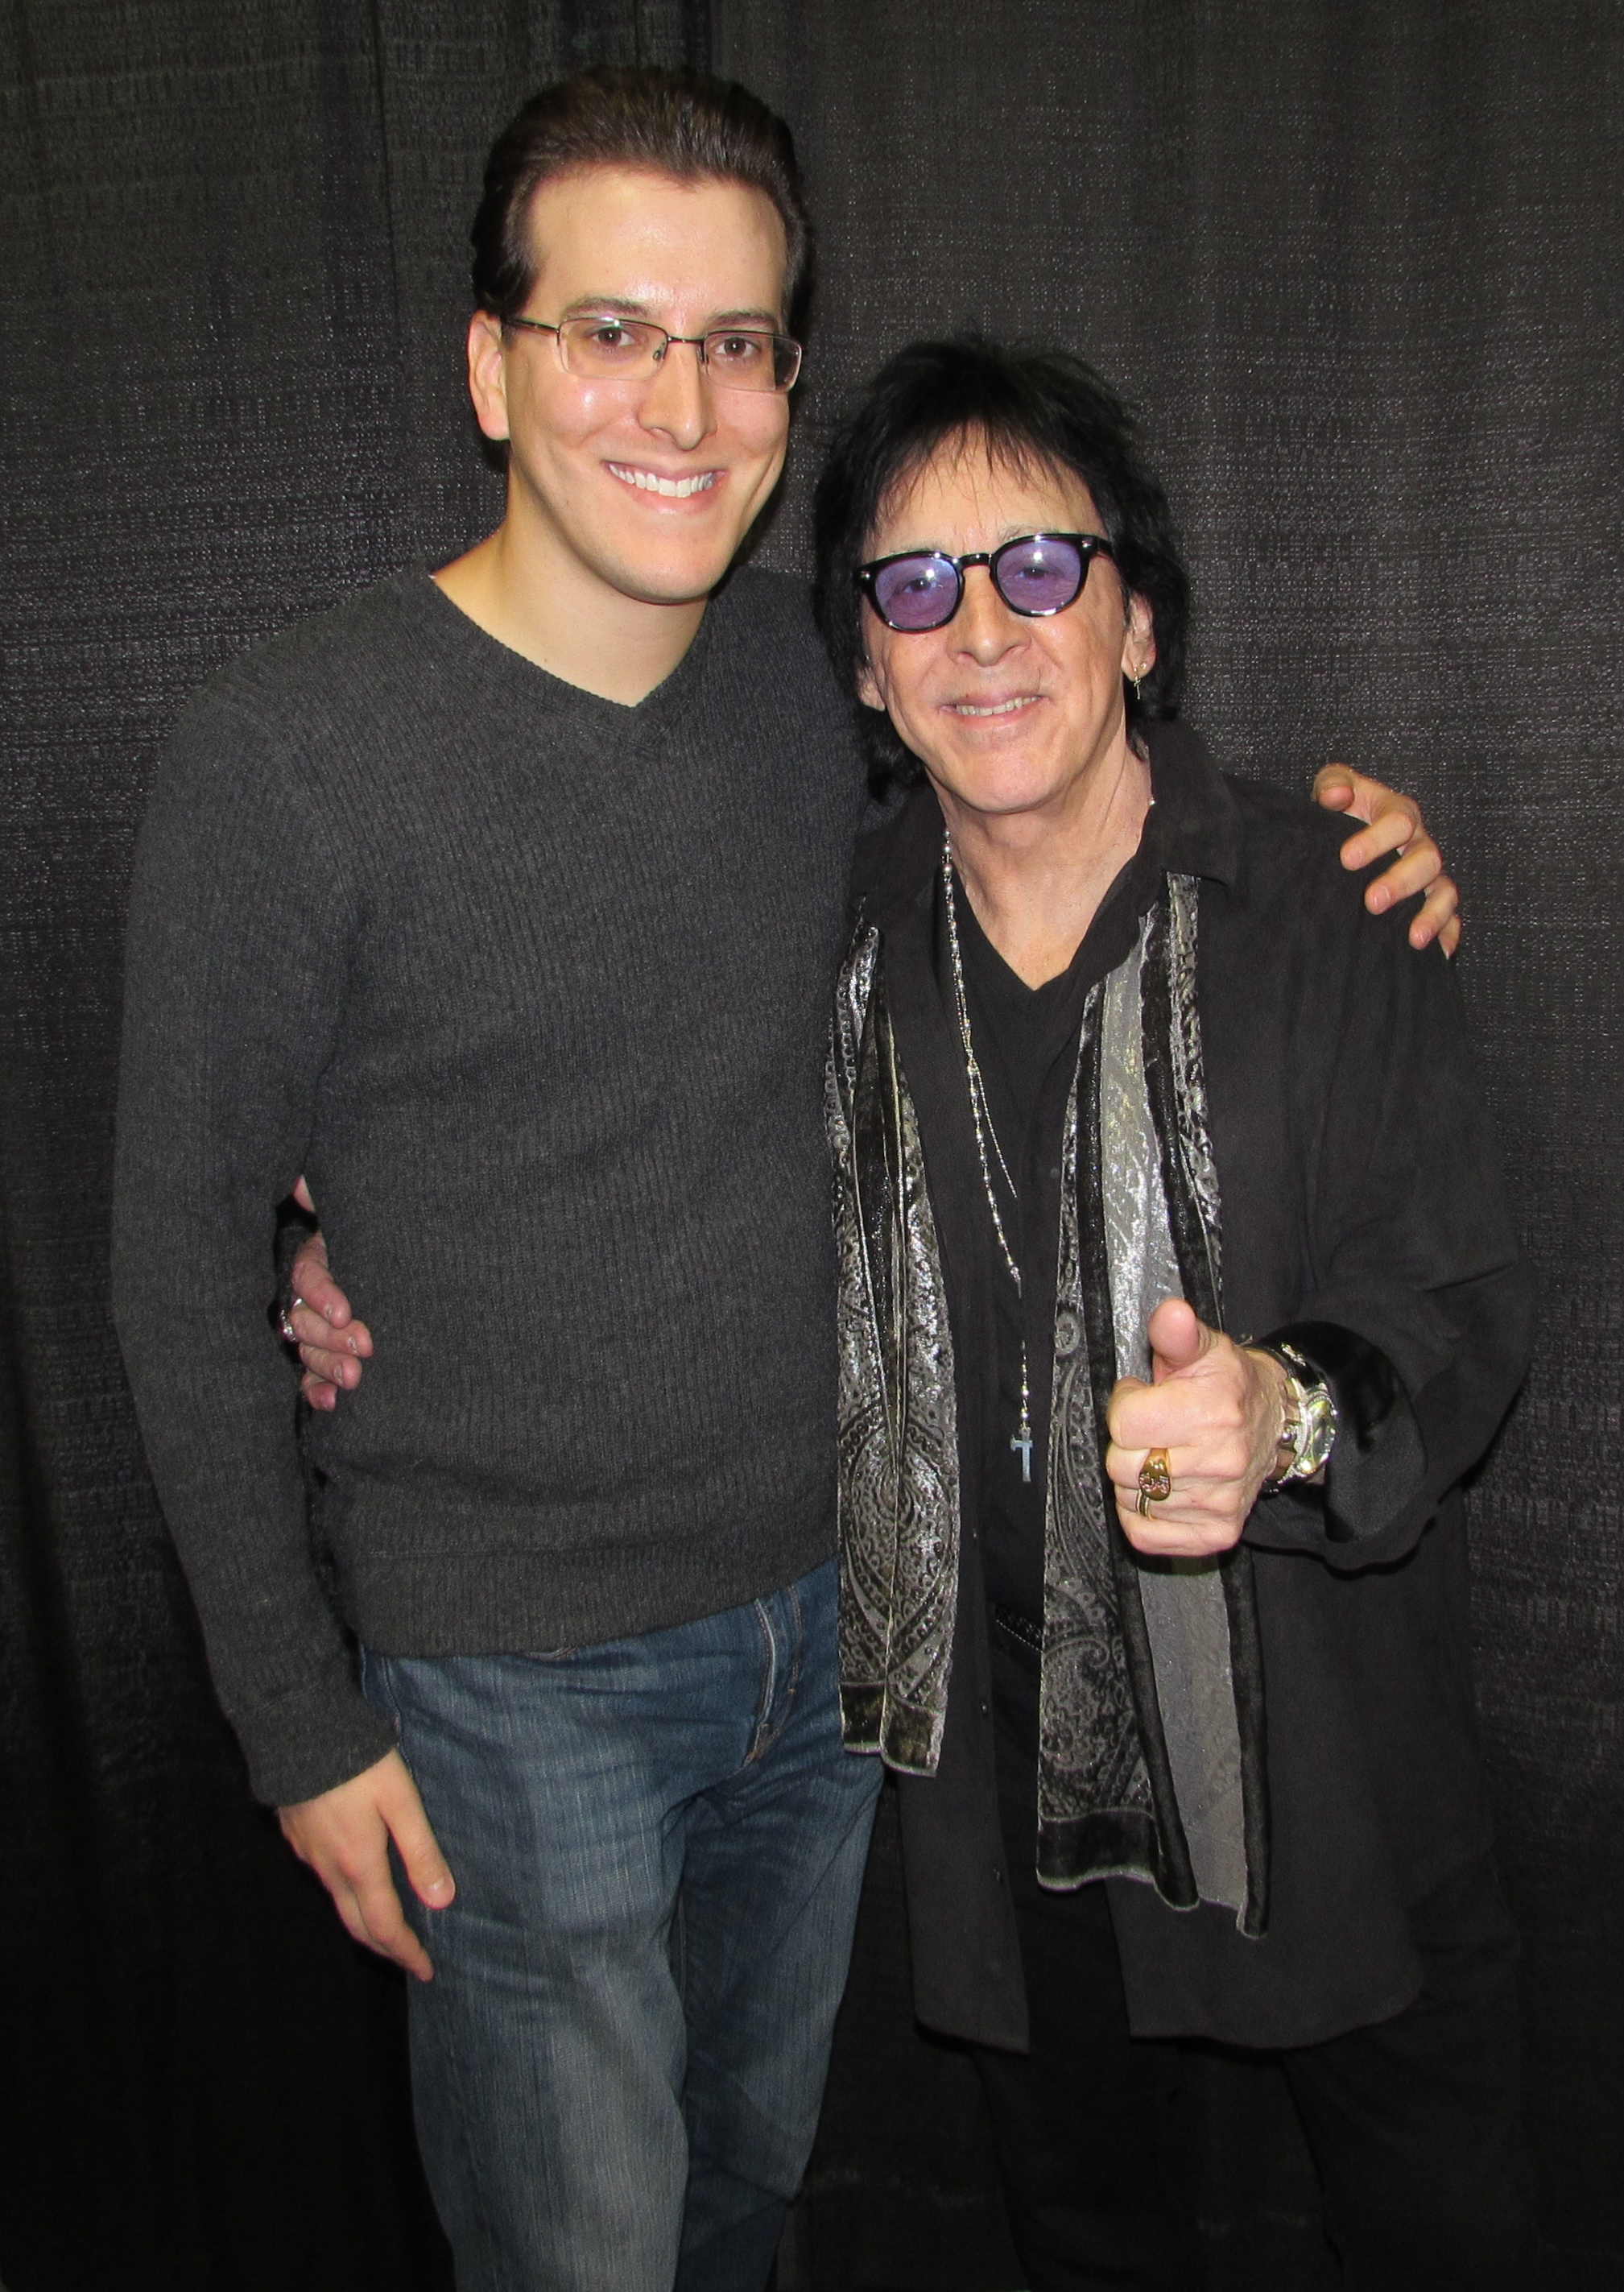 Peter criss what it was like meeting the catman michael cavacini meeting the legendary peter criss at the all things that rock festival in oaks pa kristyandbryce Choice Image